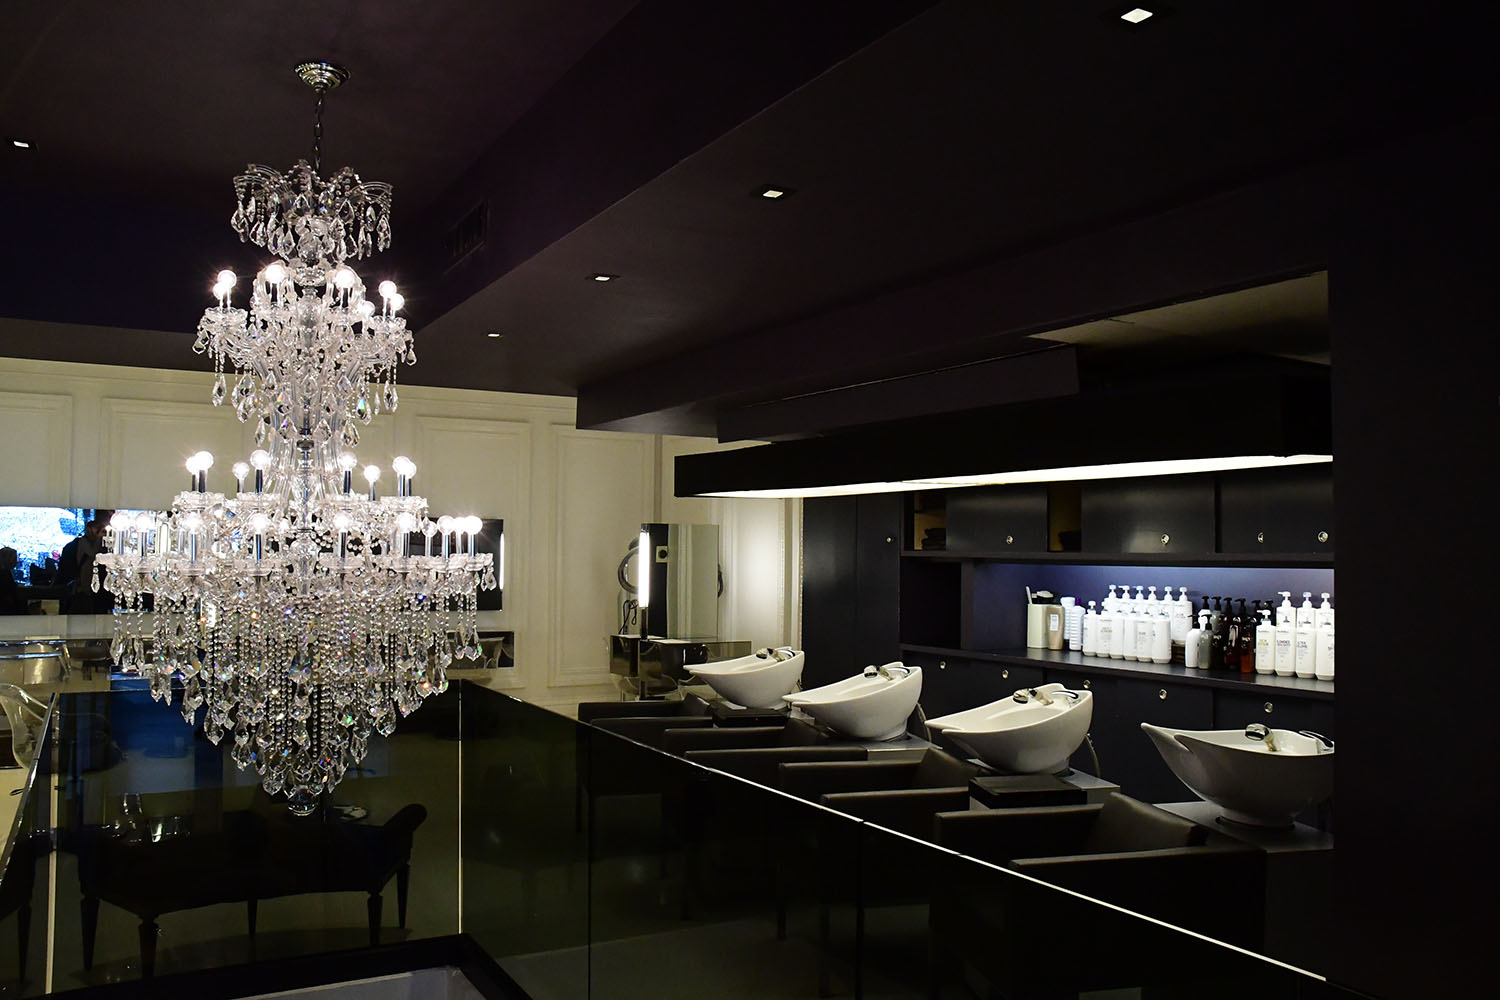 black hair salon with white sinks and a large chandelier